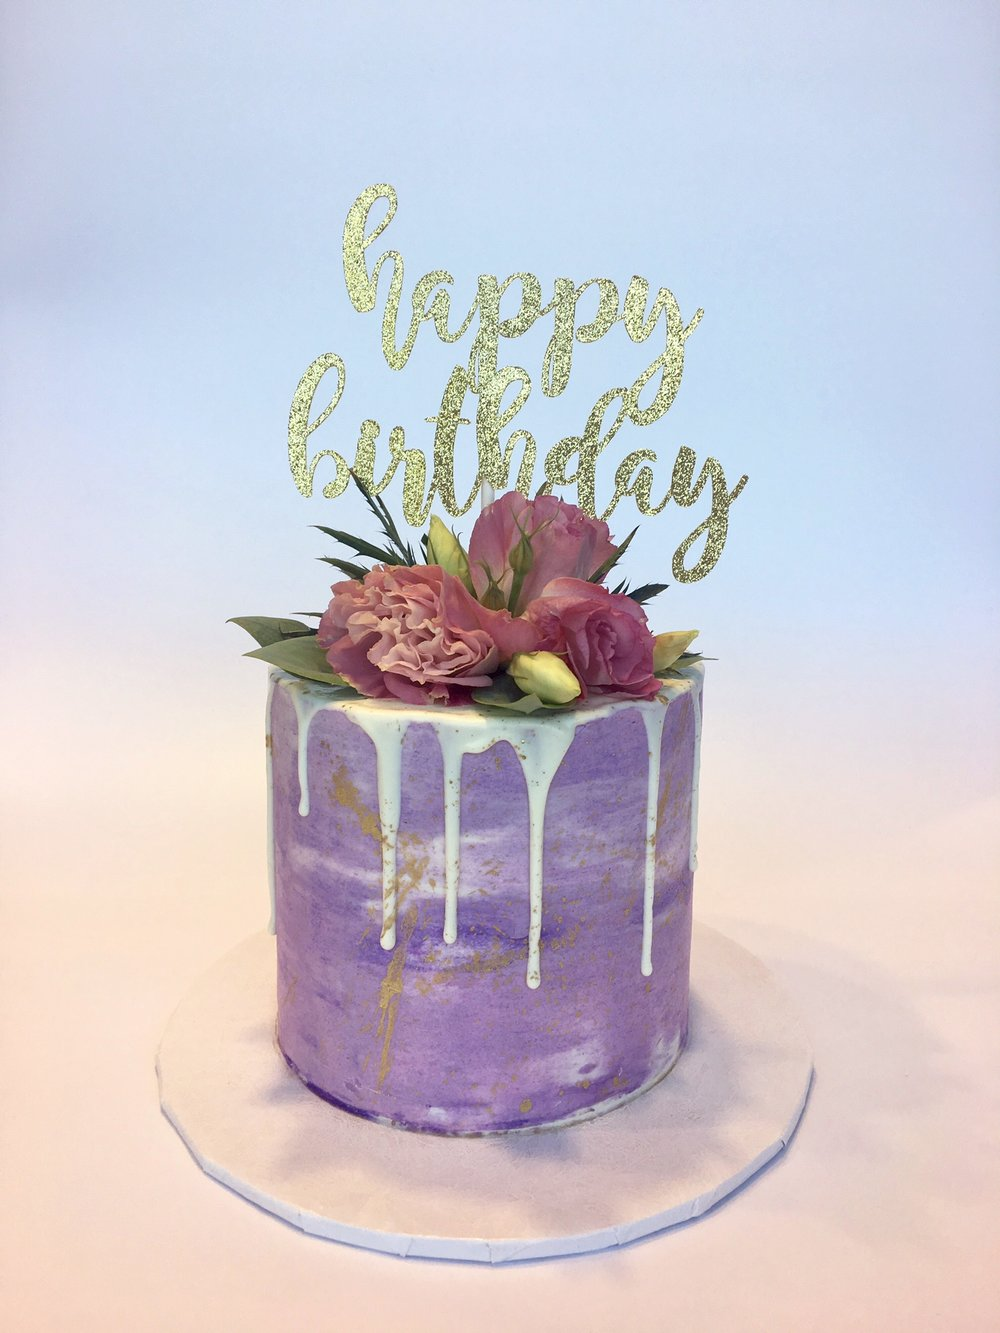 Seair's Purple Birthday Cake.jpg